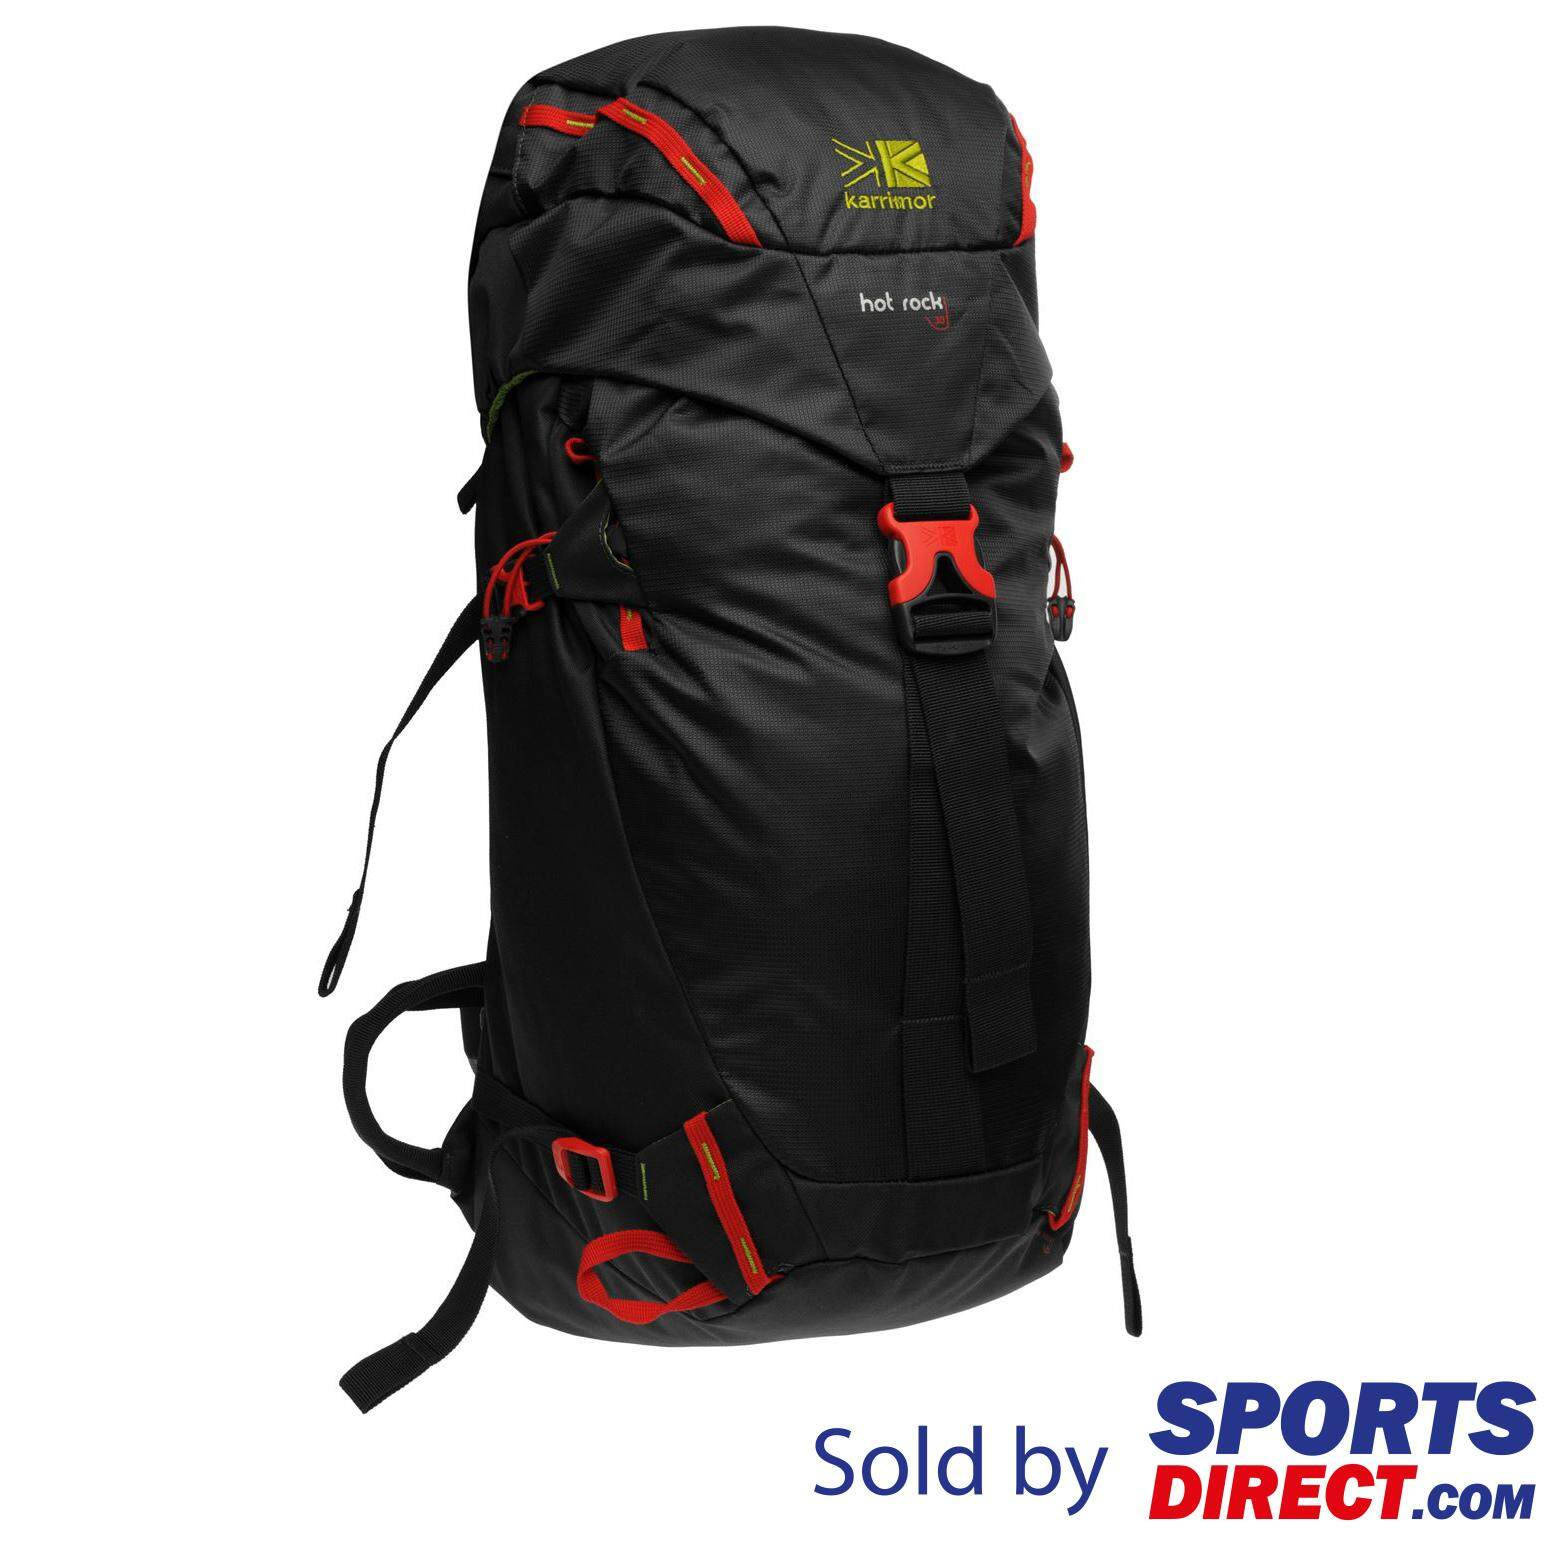 5b31a960c4 Men s Sports Bags - Buy Men s Sports Bags at Best Price in Malaysia ...